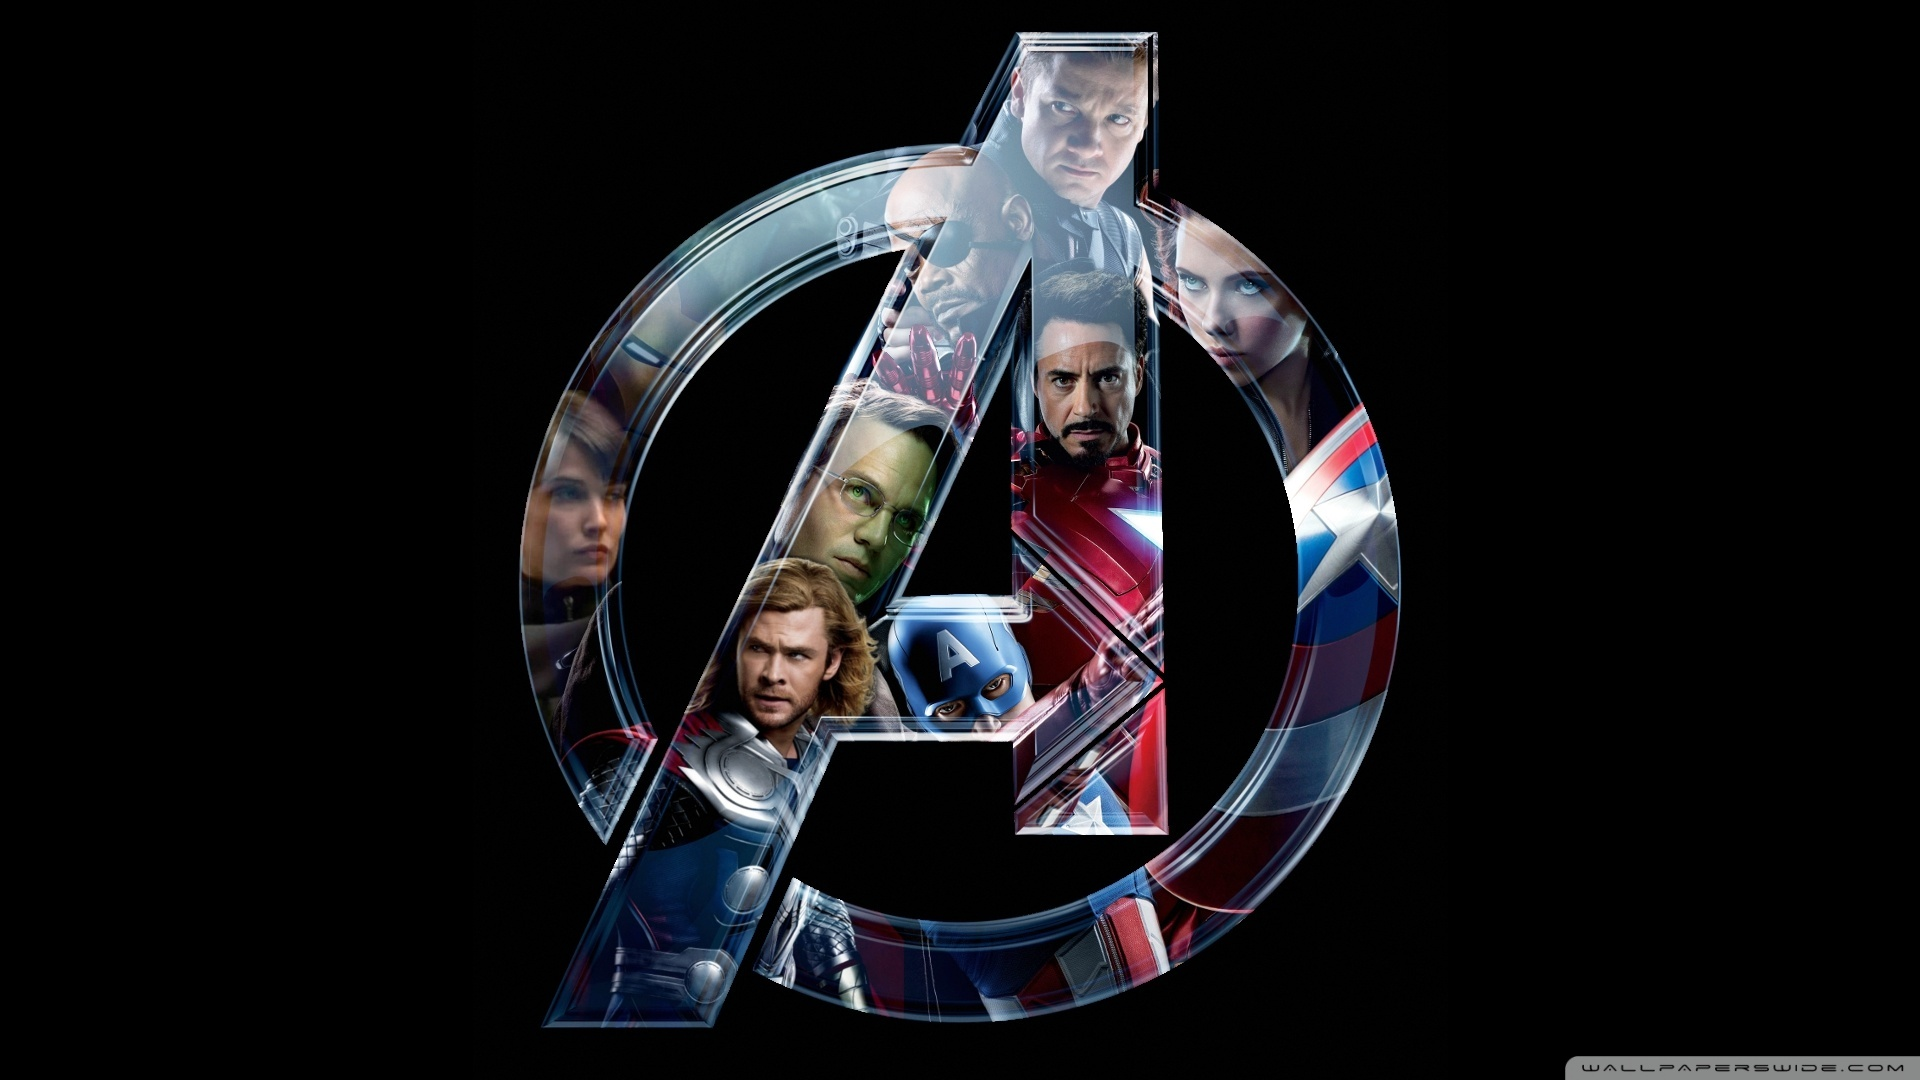 Marvel Avengers Wallpaper The Avengers Wallpapers HD 1920x1080